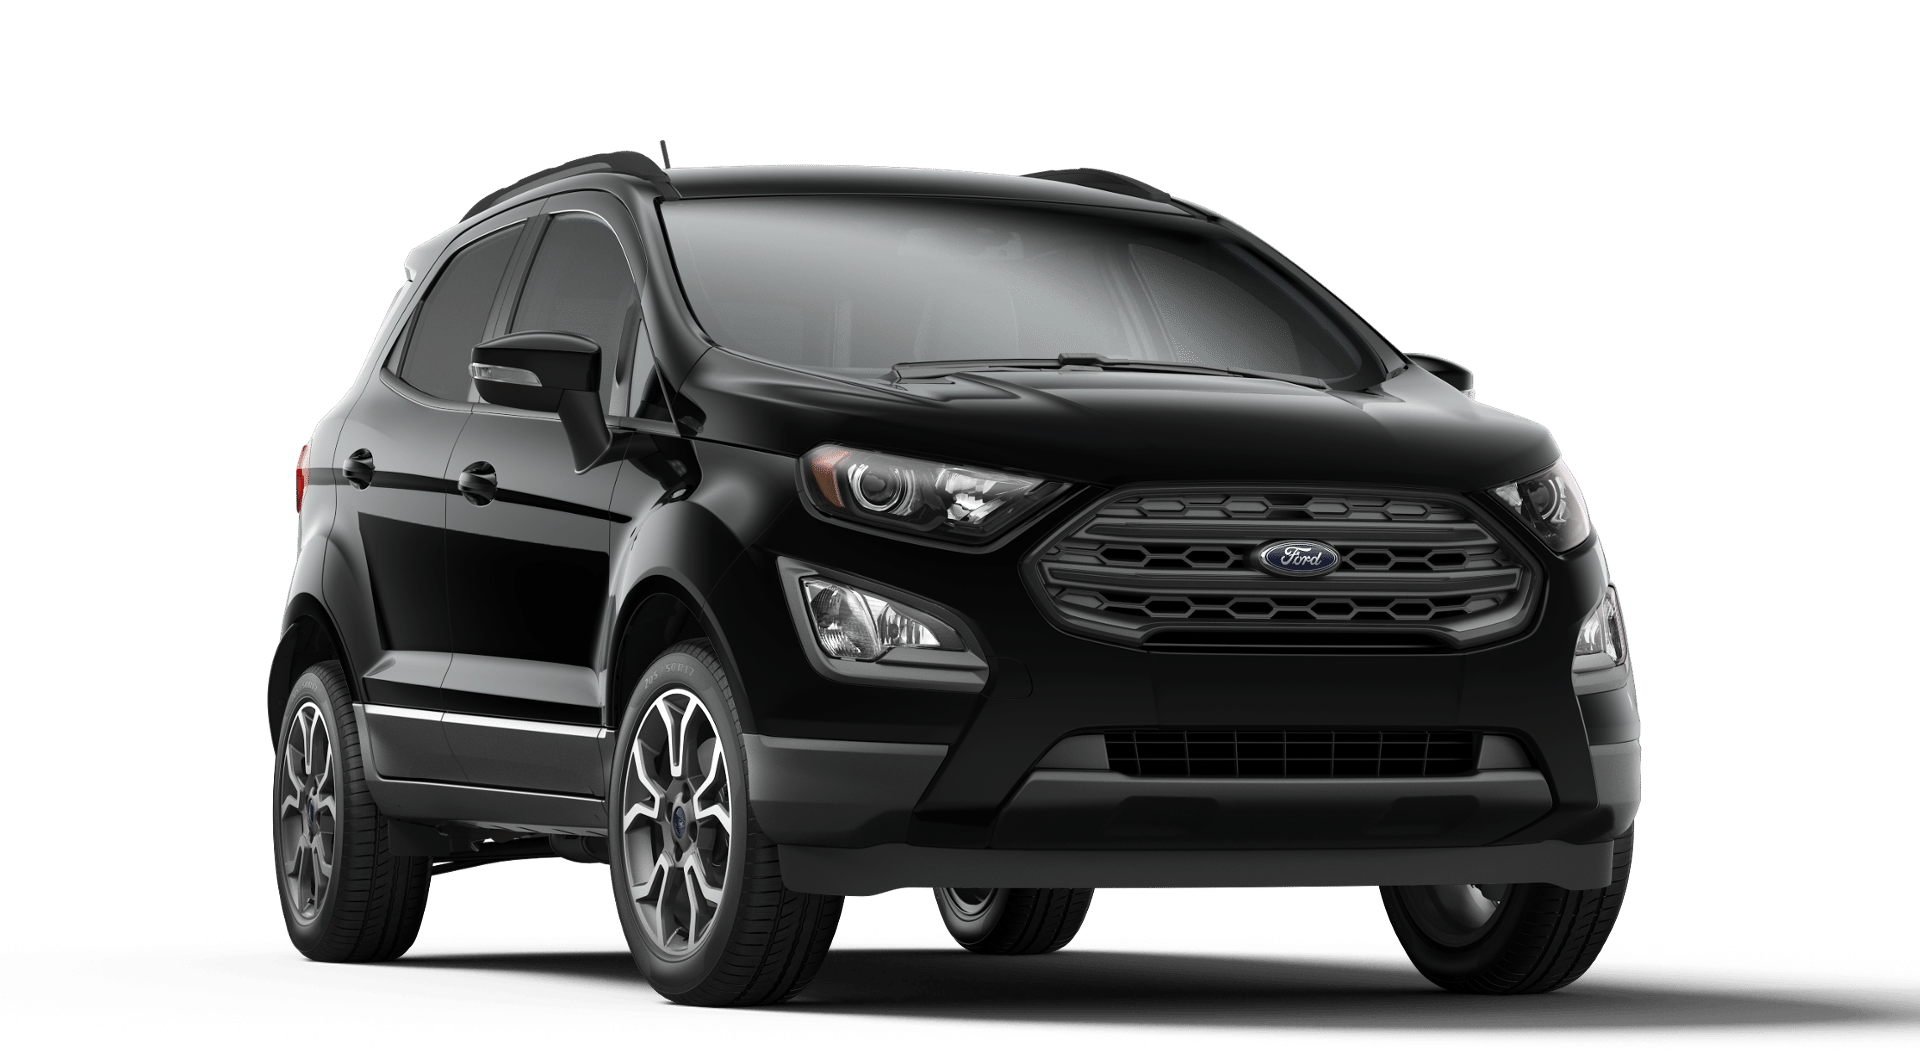 2019-Ford-EcoSport-Shadow-Black-Exterior-Color_o